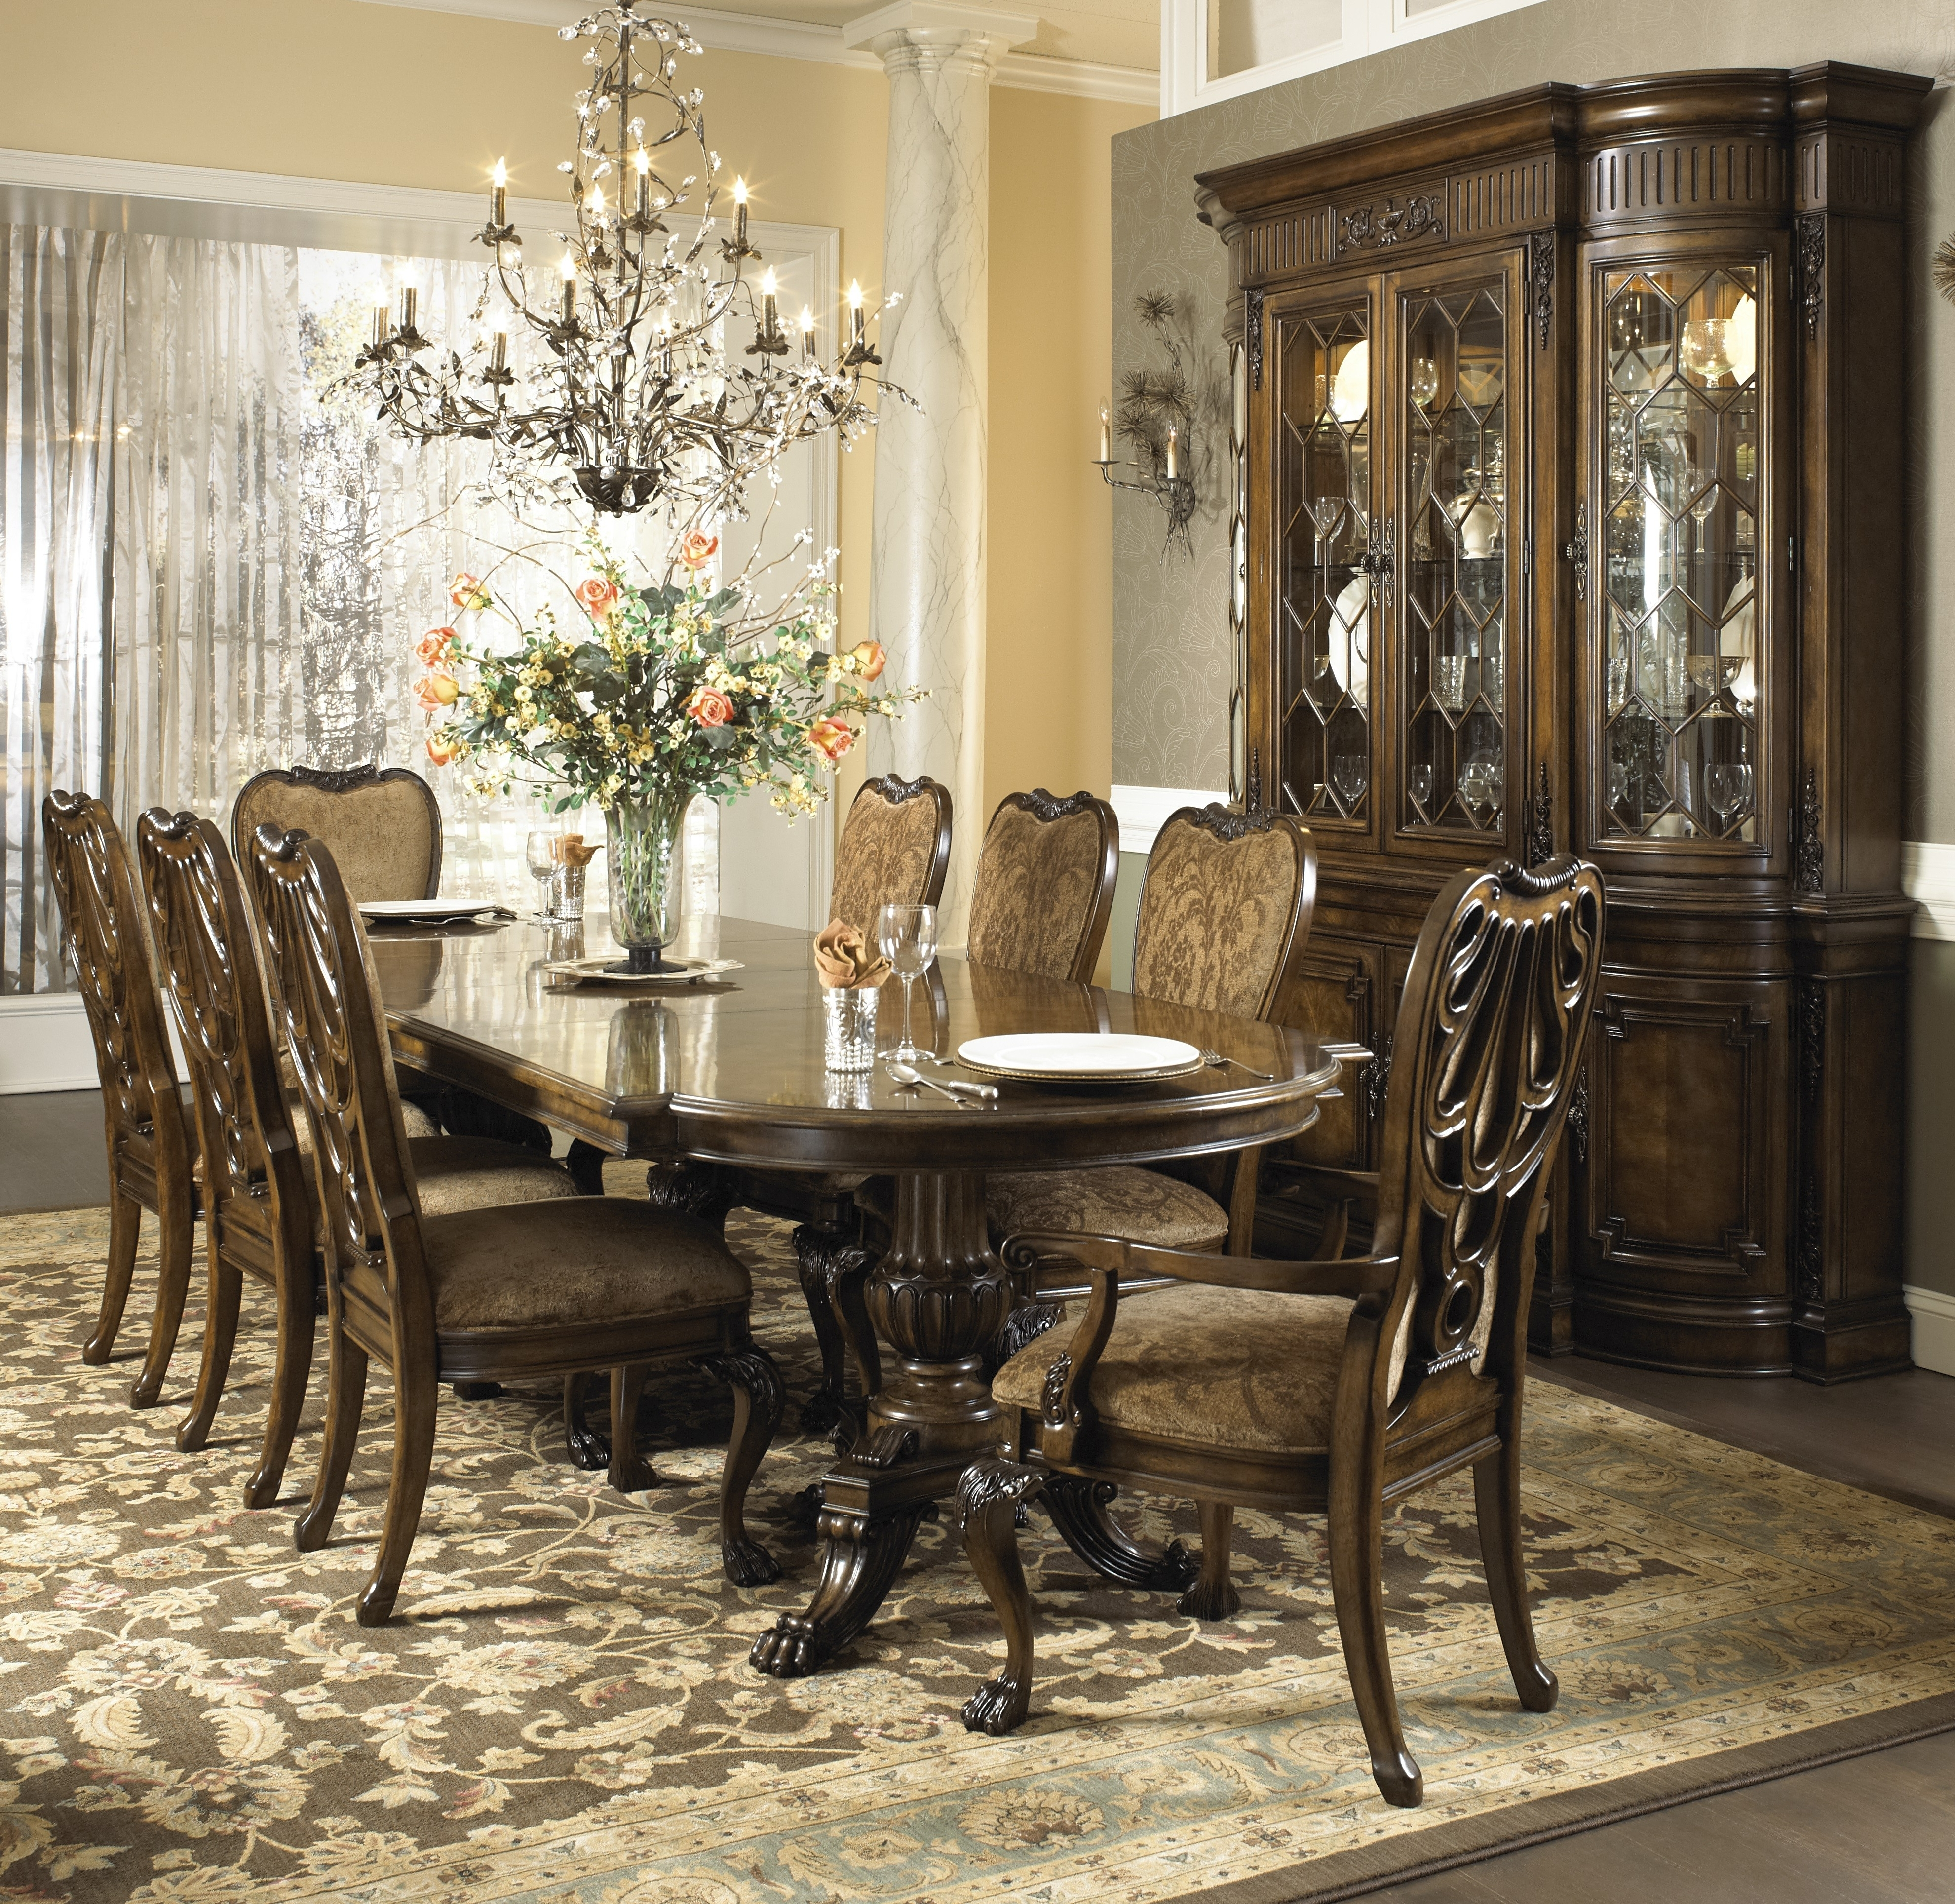 2017 Dining Table Sets Regarding Buy The Belvedere Dining Room Setfine Furniture Design From Www (View 1 of 25)